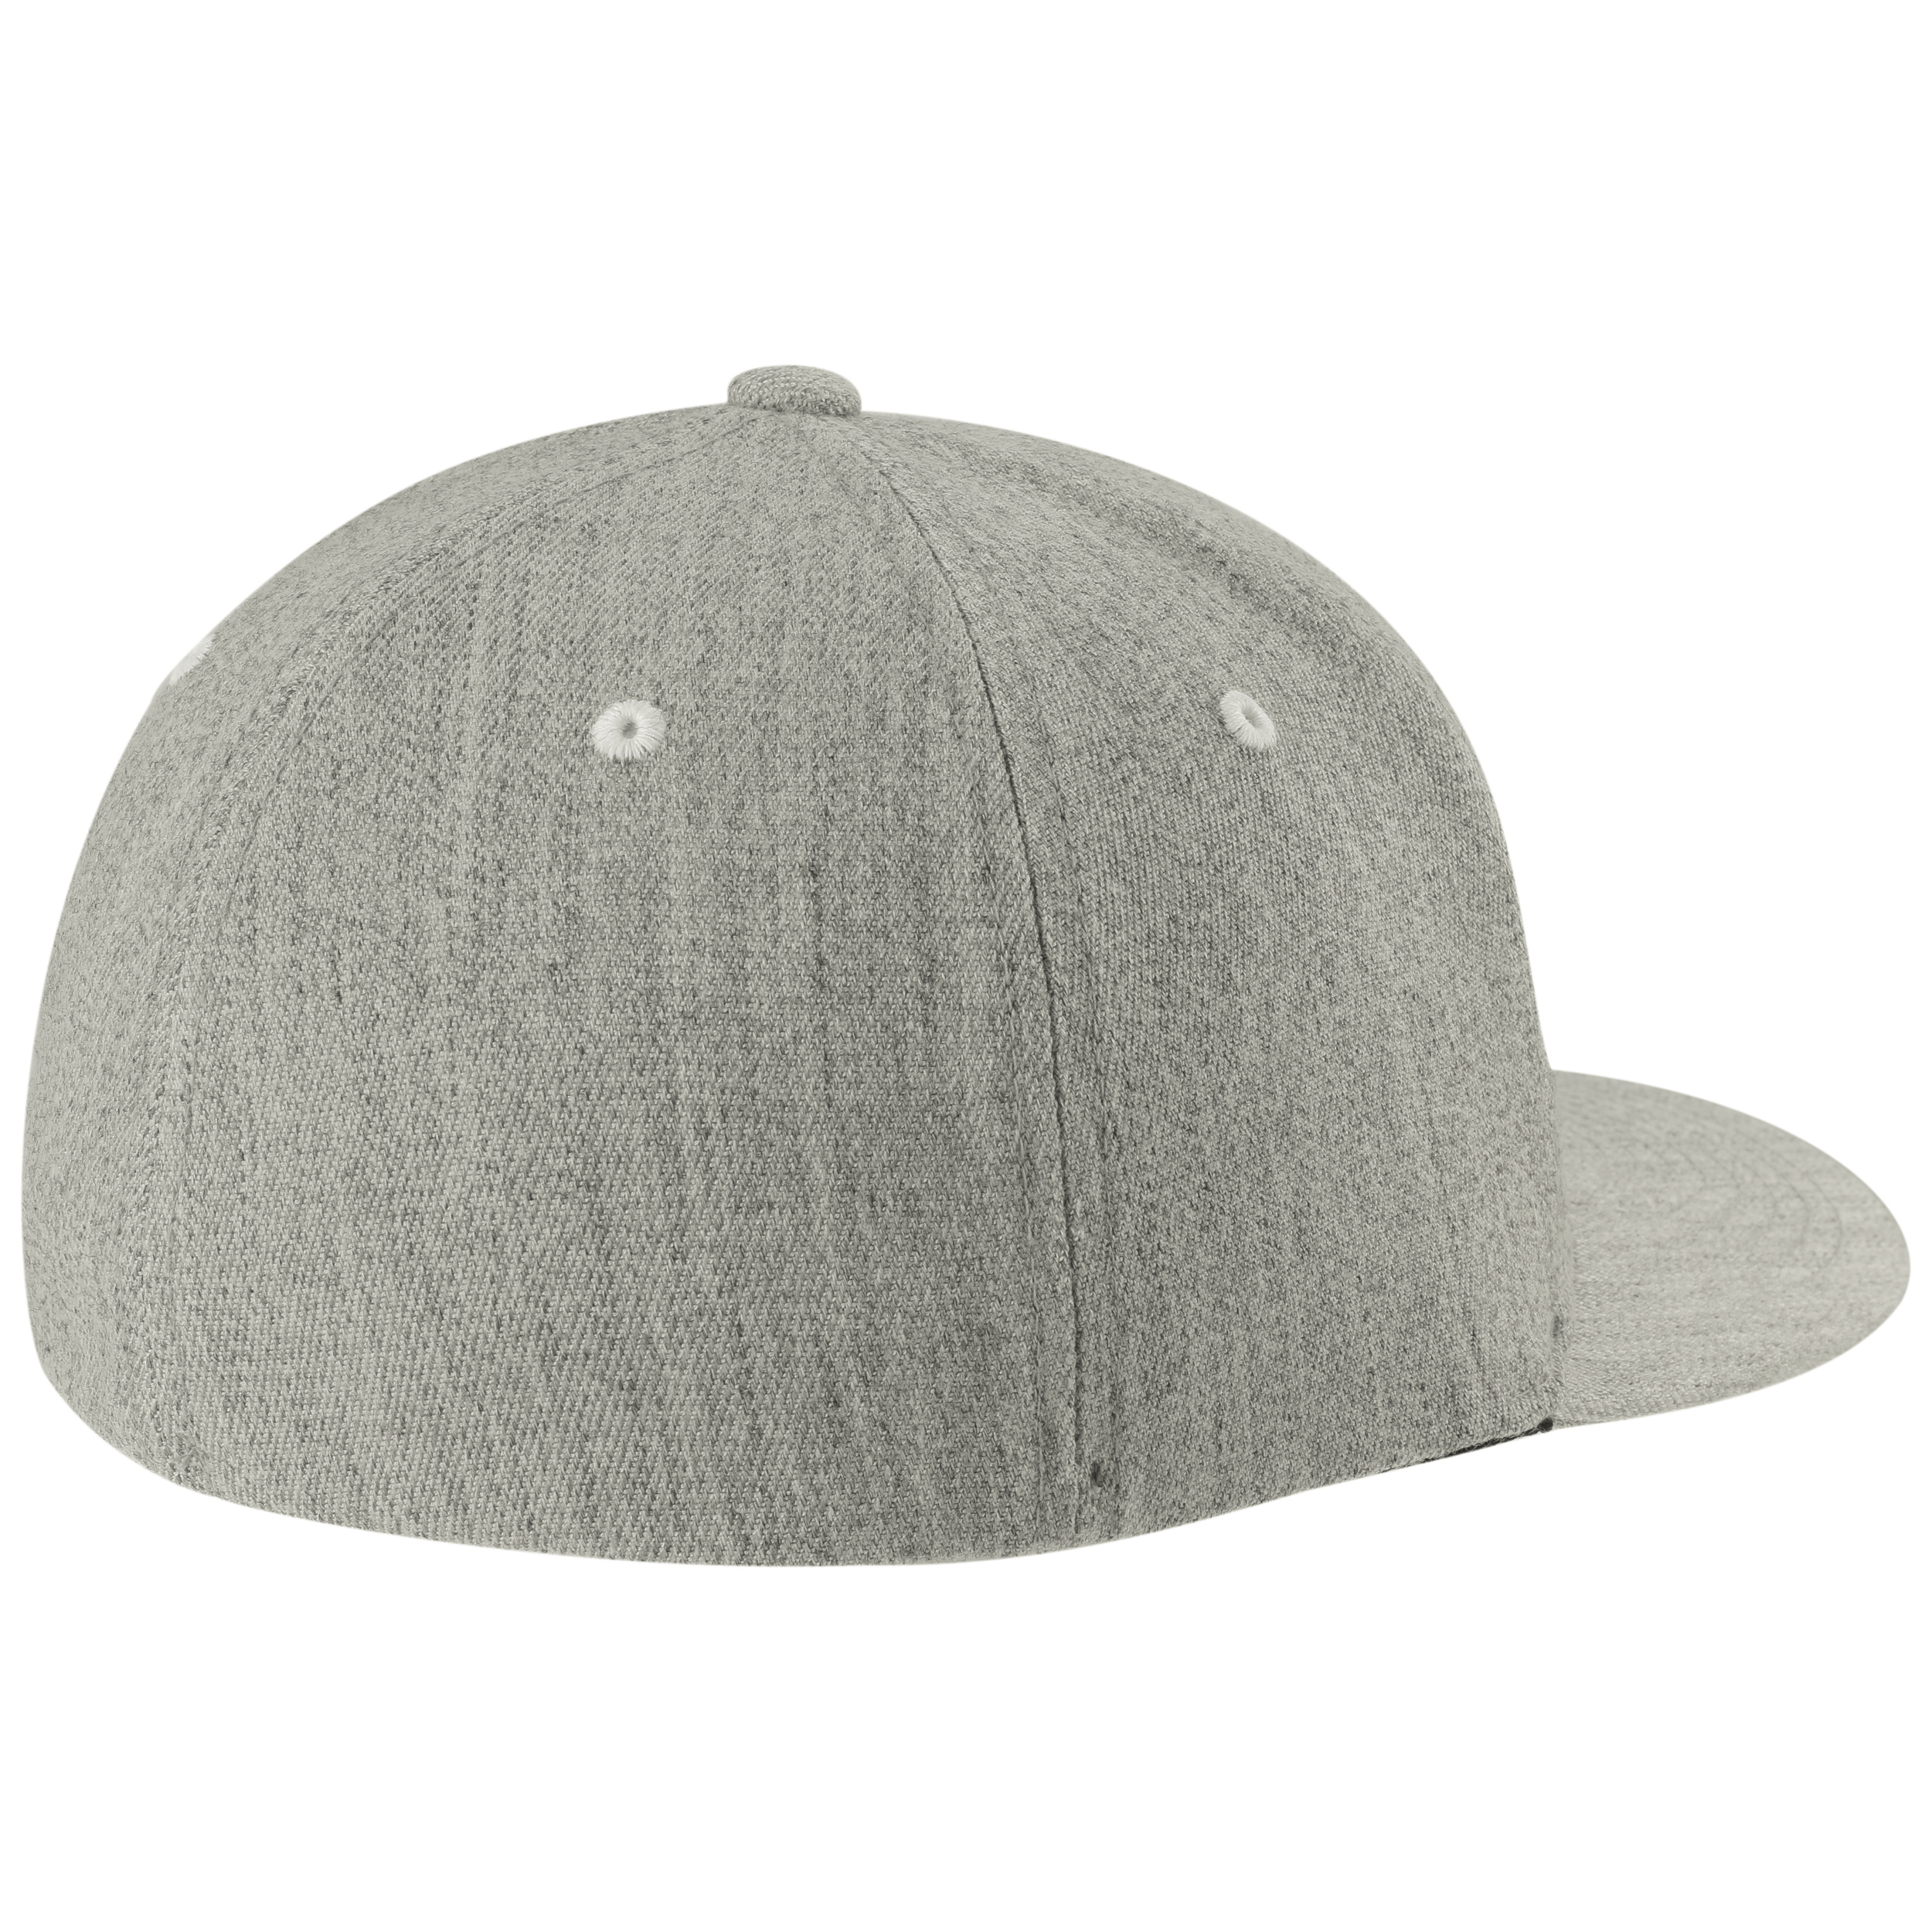 qualité stable choisir le plus récent boutique officielle Casquette Deep Down Flexfit by Nixon